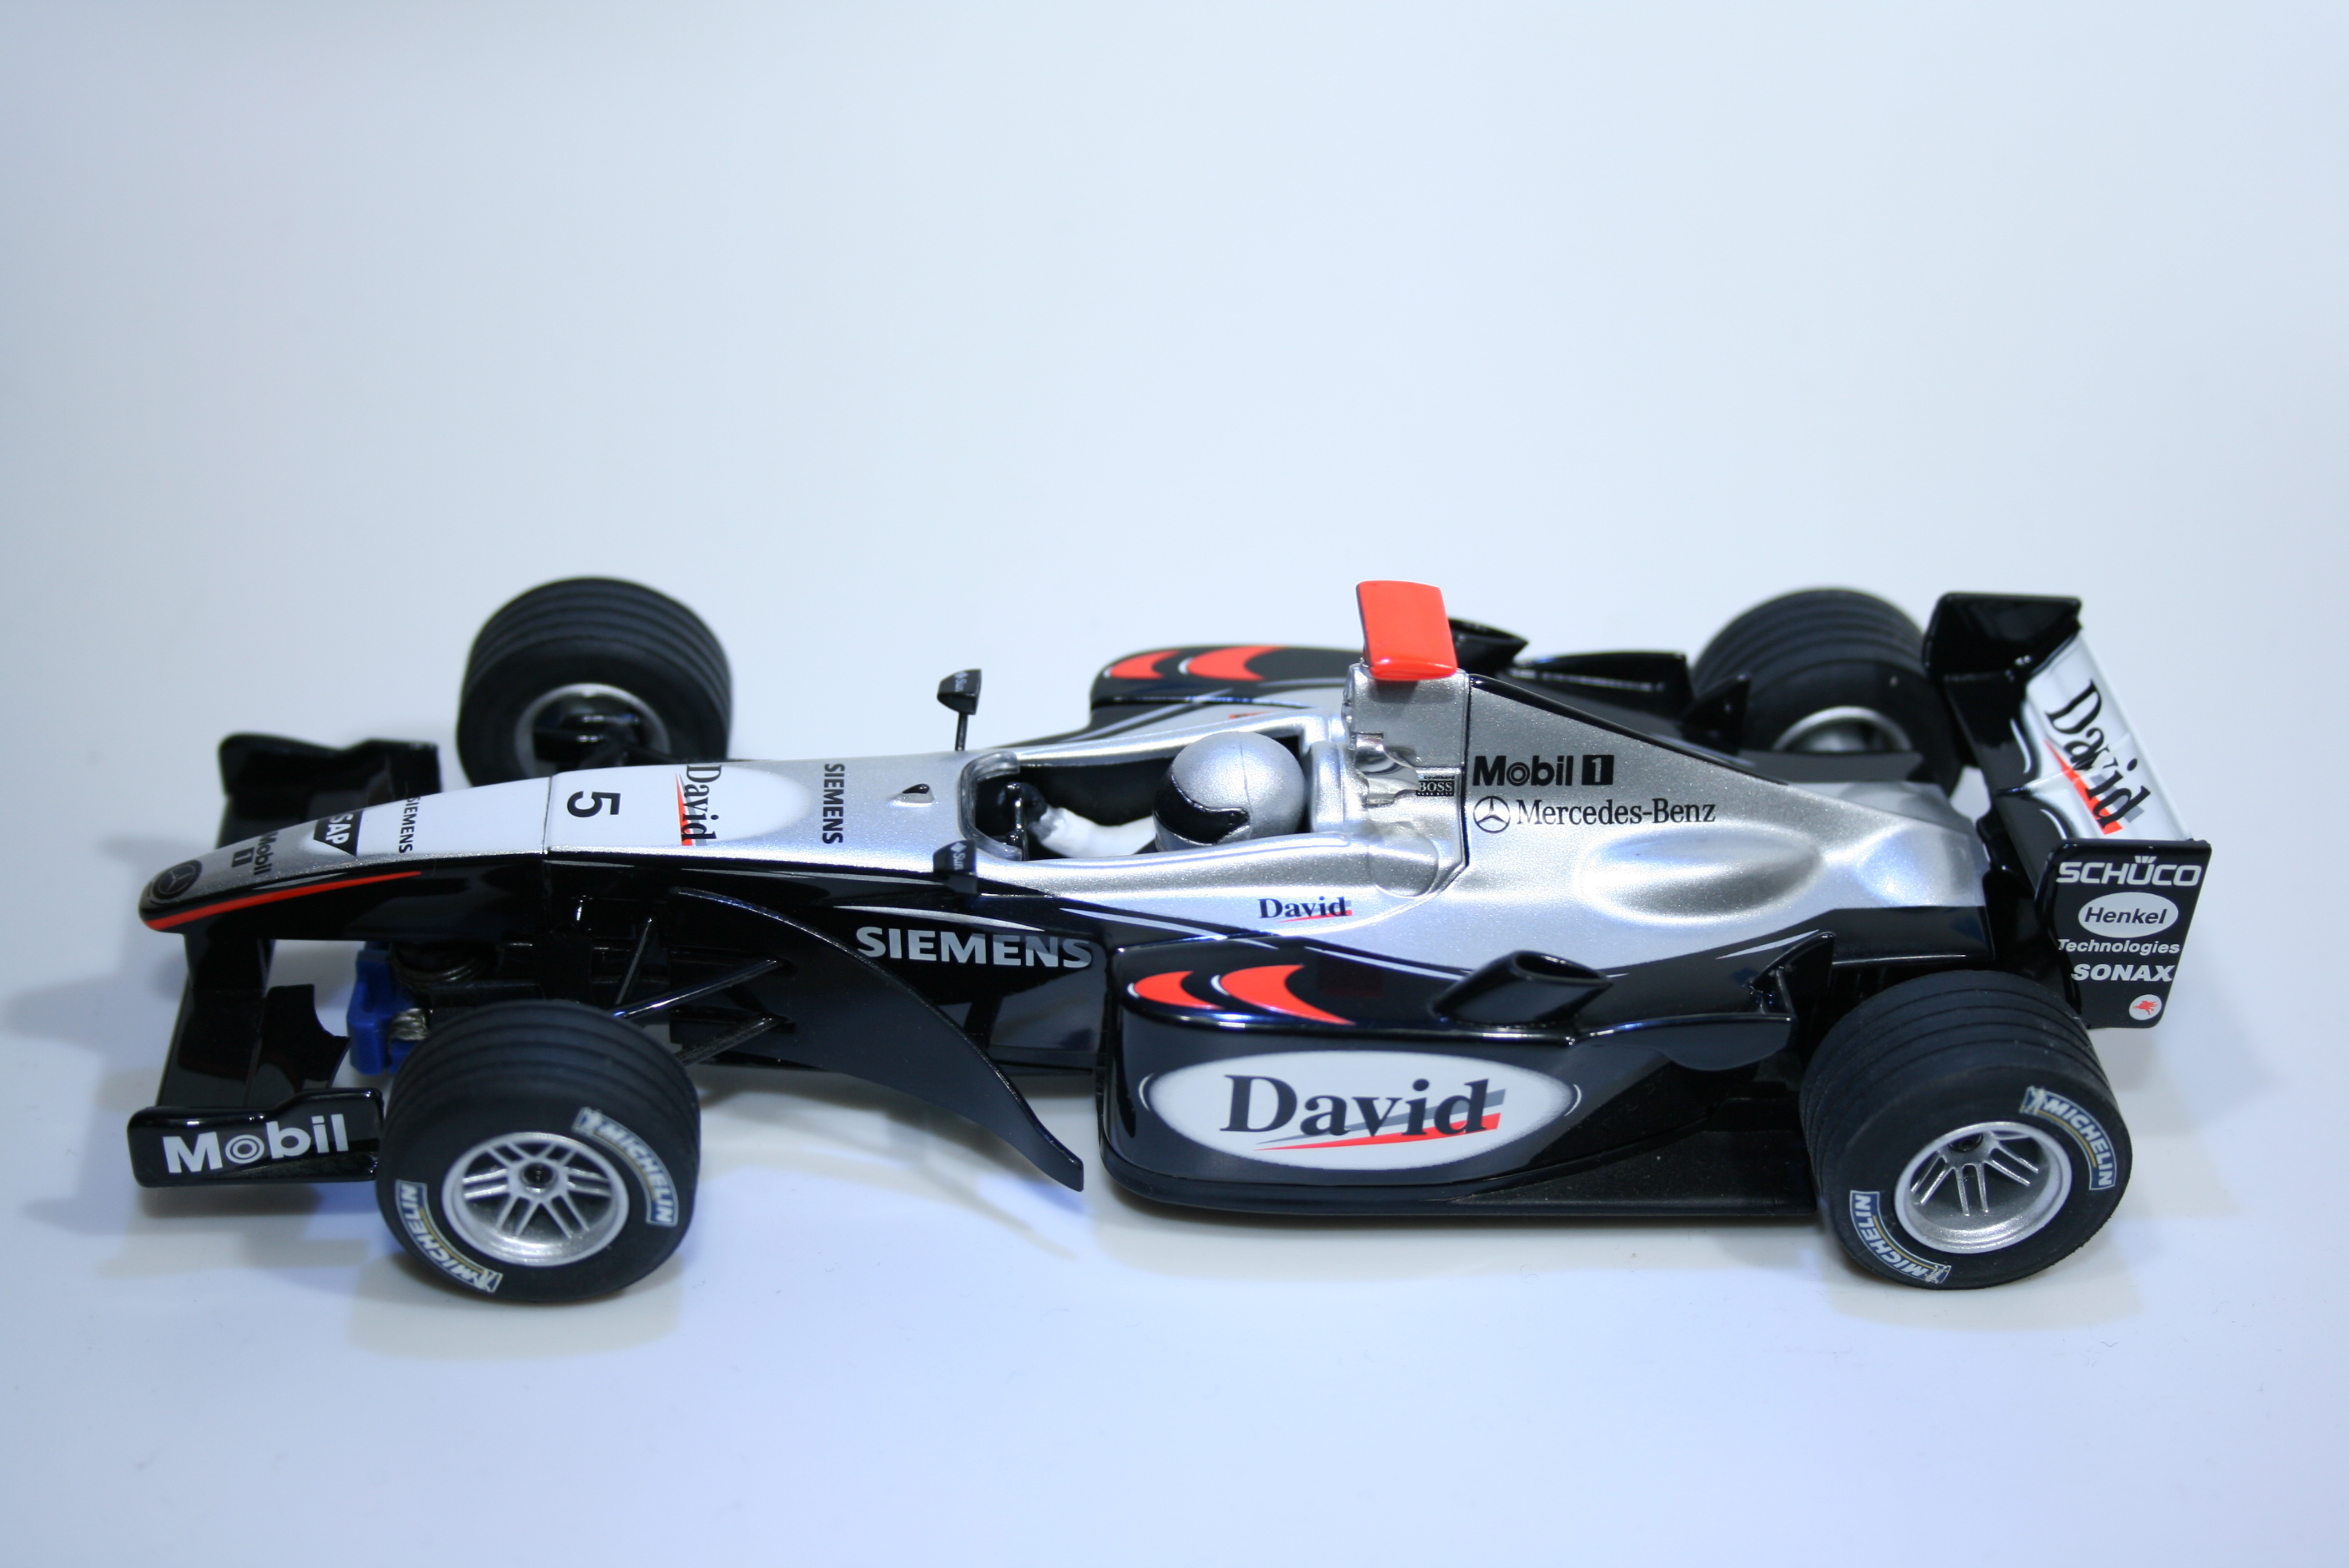 52 Mclaren MP4/19 2004 D Coulthard Scalextric C2554 2004 Boxed